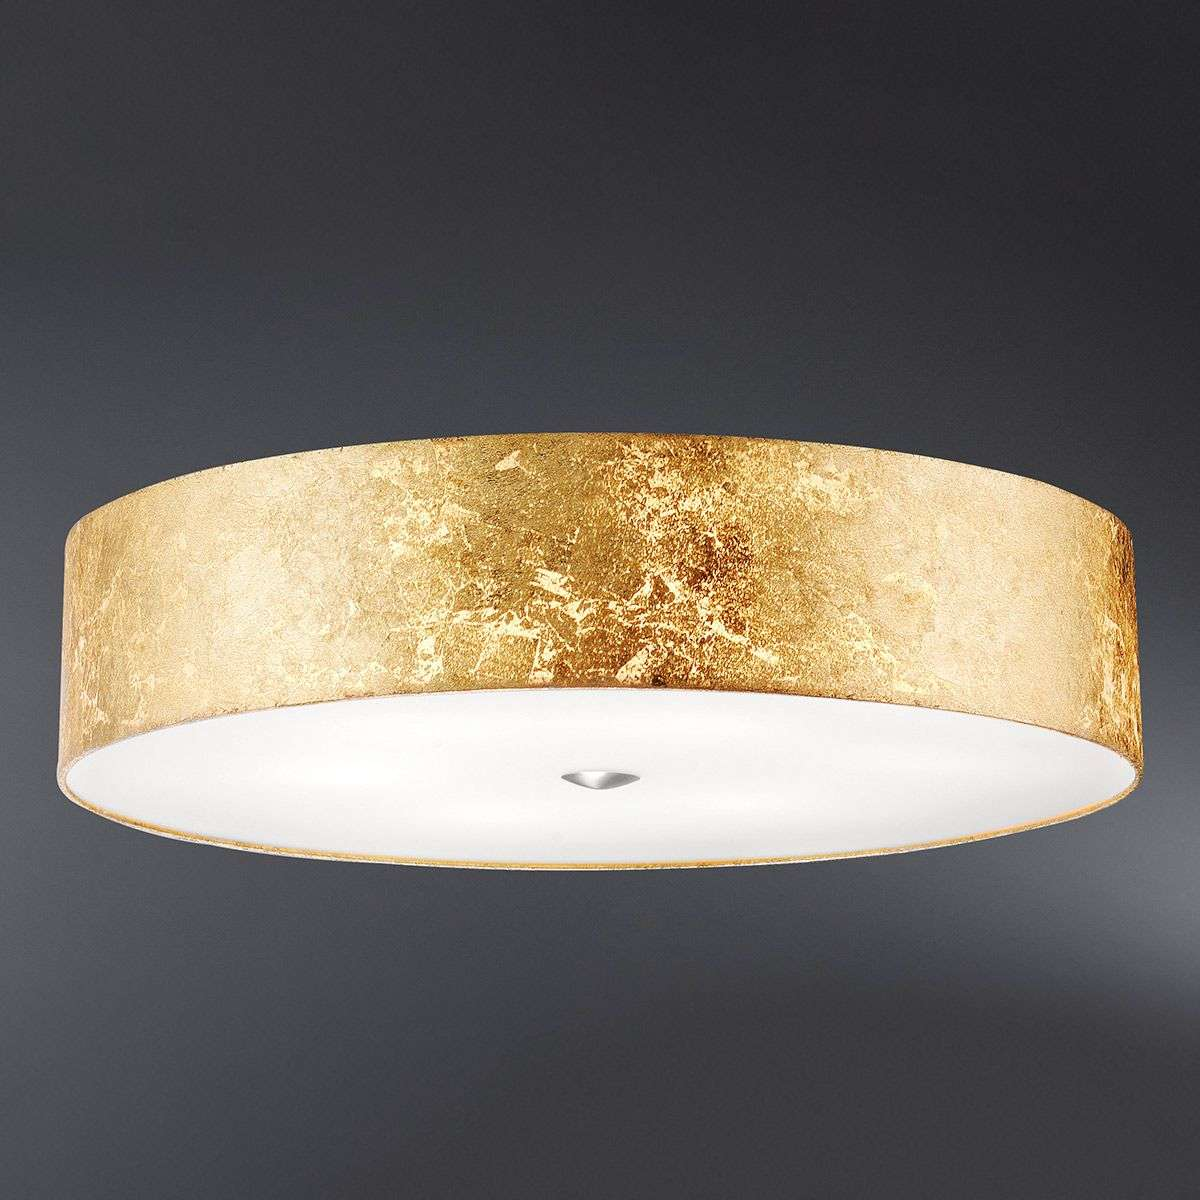 All White With Gold Leaf Ceiling And Degournay Coco: Alea Loop Ceiling Light With Gold Leaf